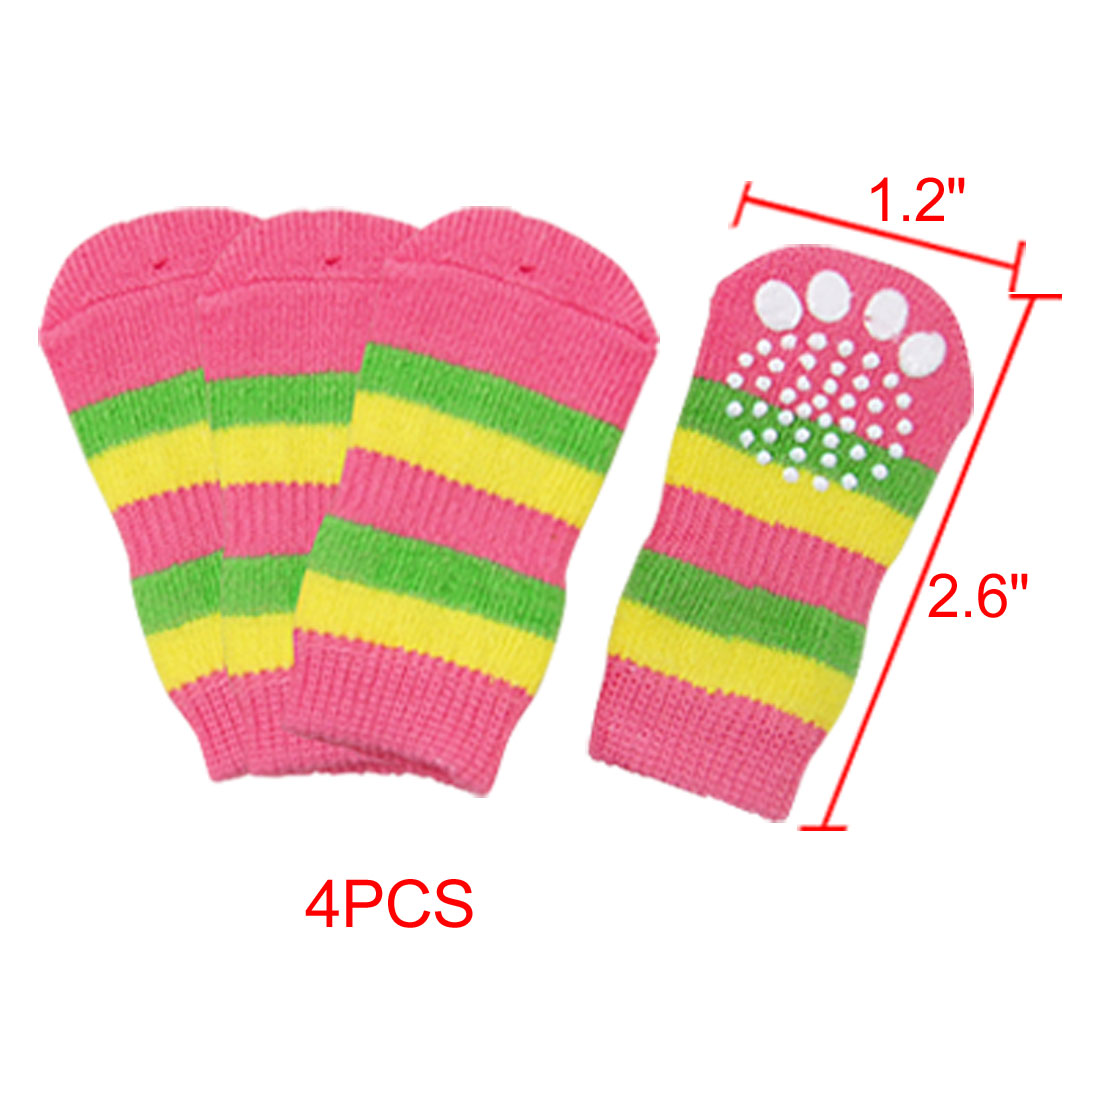 Puppy Striped Pattern Elastic Non-slip Warm Socks 4Pcs